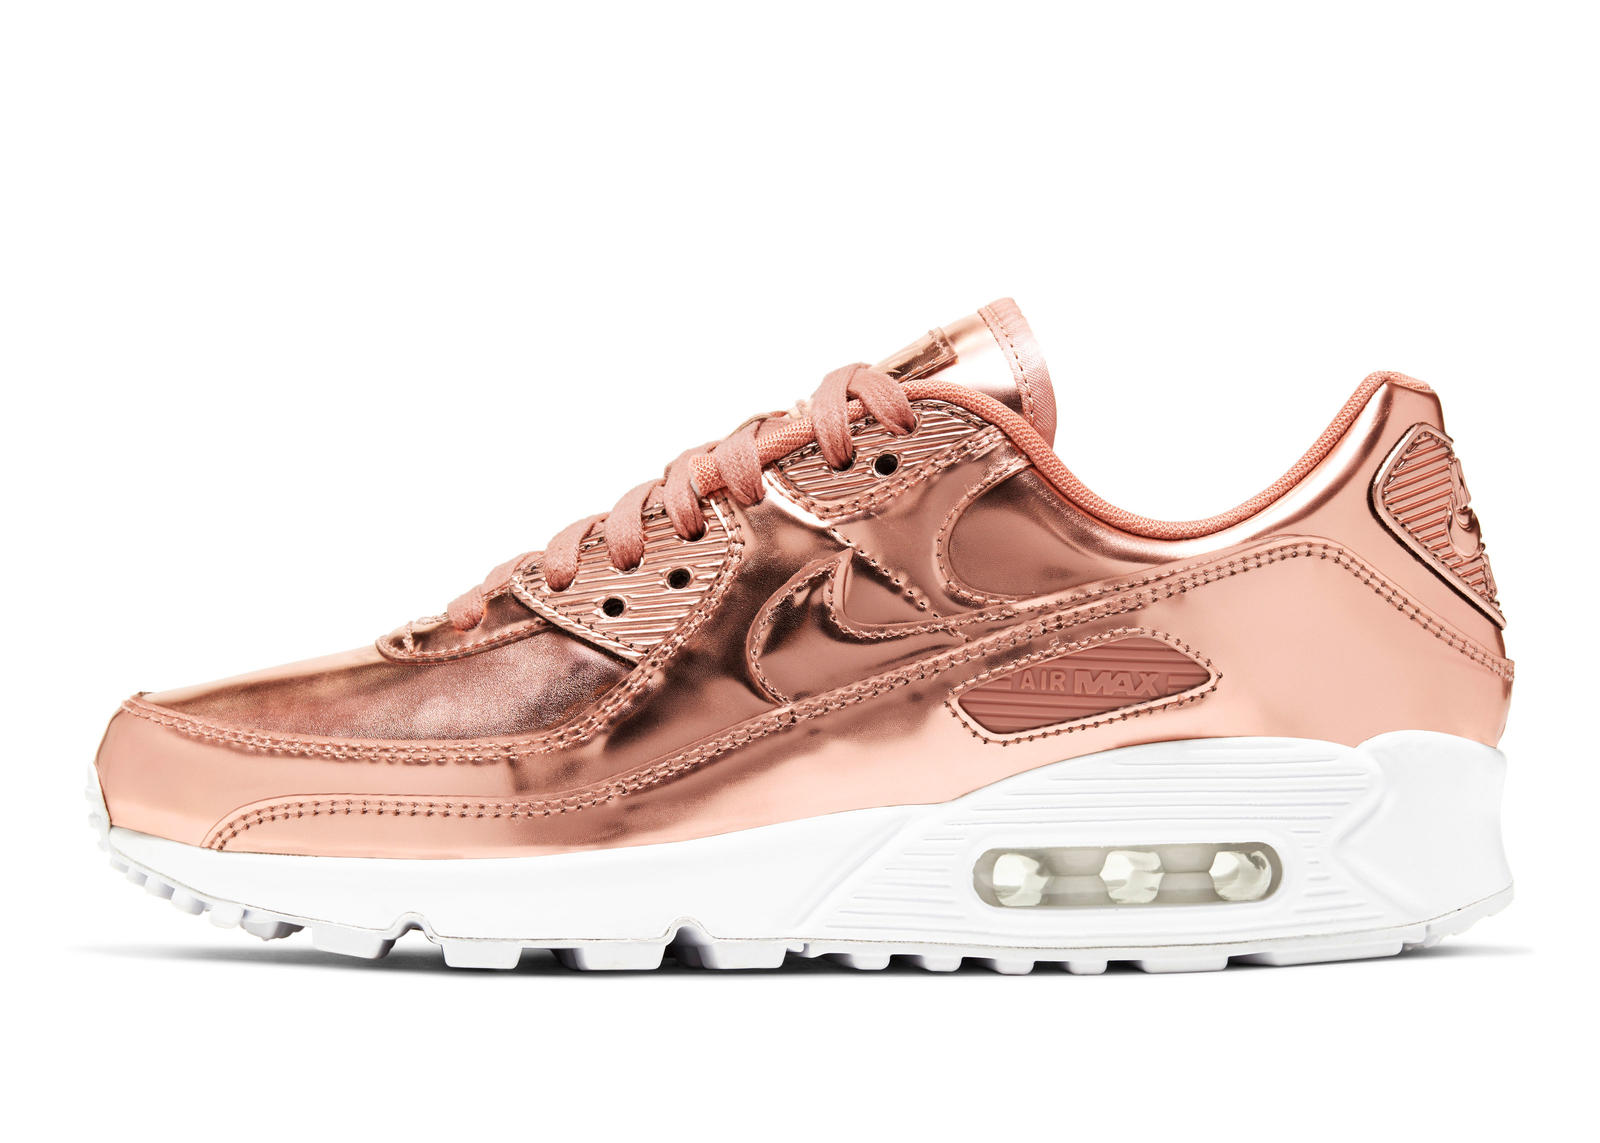 Air Max Day 2020 Releases  10